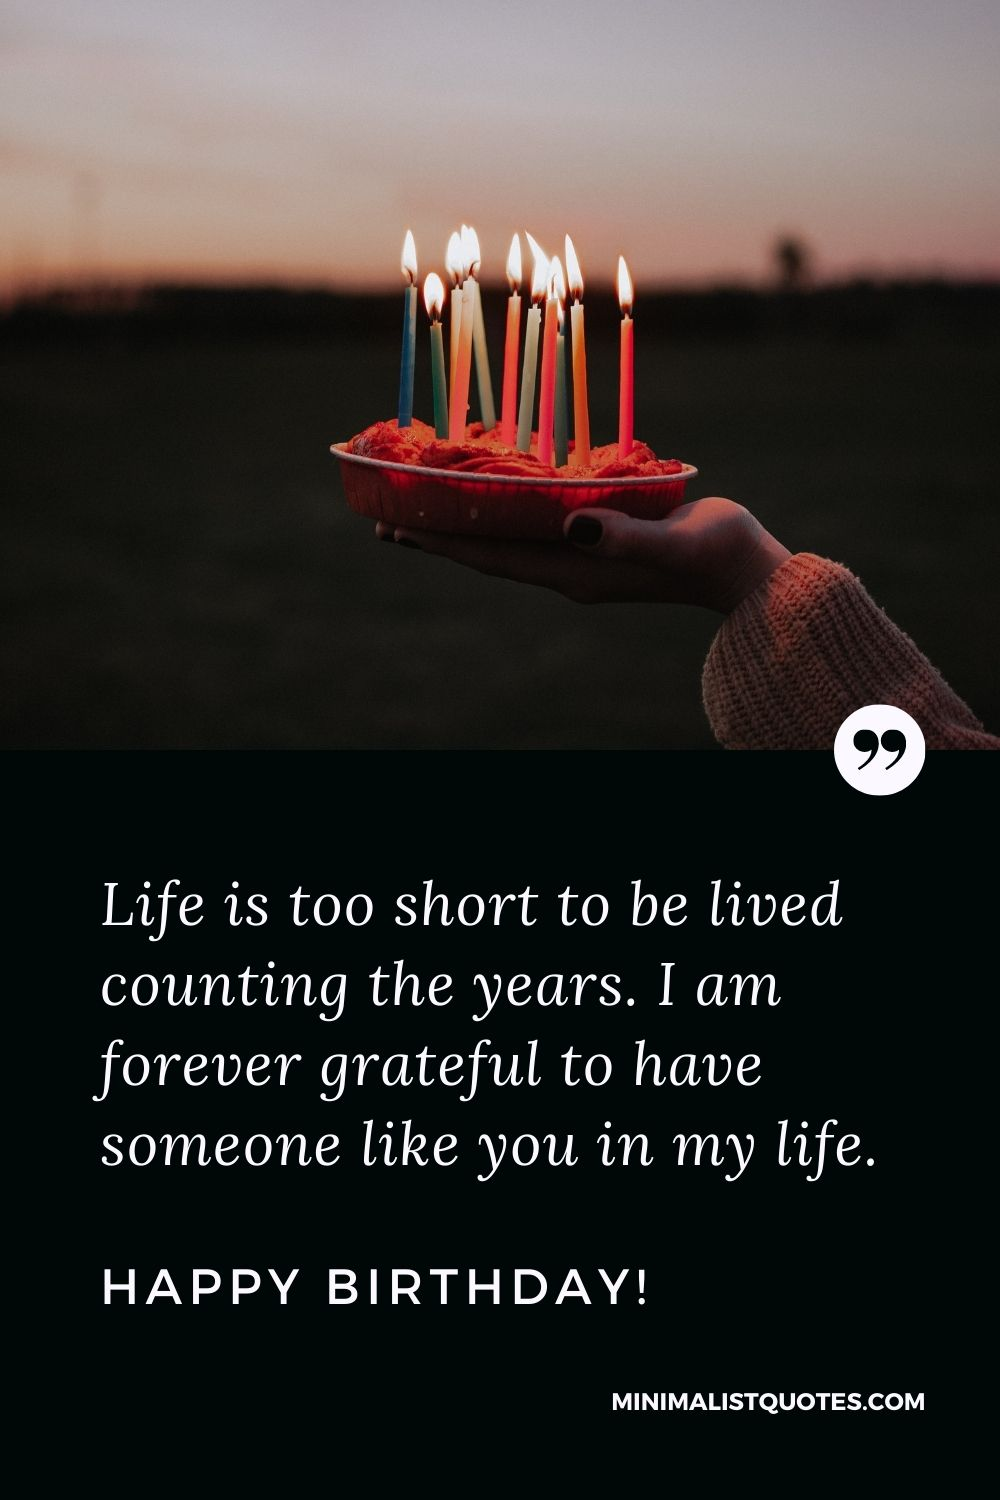 Birthday Quote, Wish & Message With Image: Life is too short to be lived counting the years.I am forever grateful tohave someone like you in mylife.Happy Birthday!